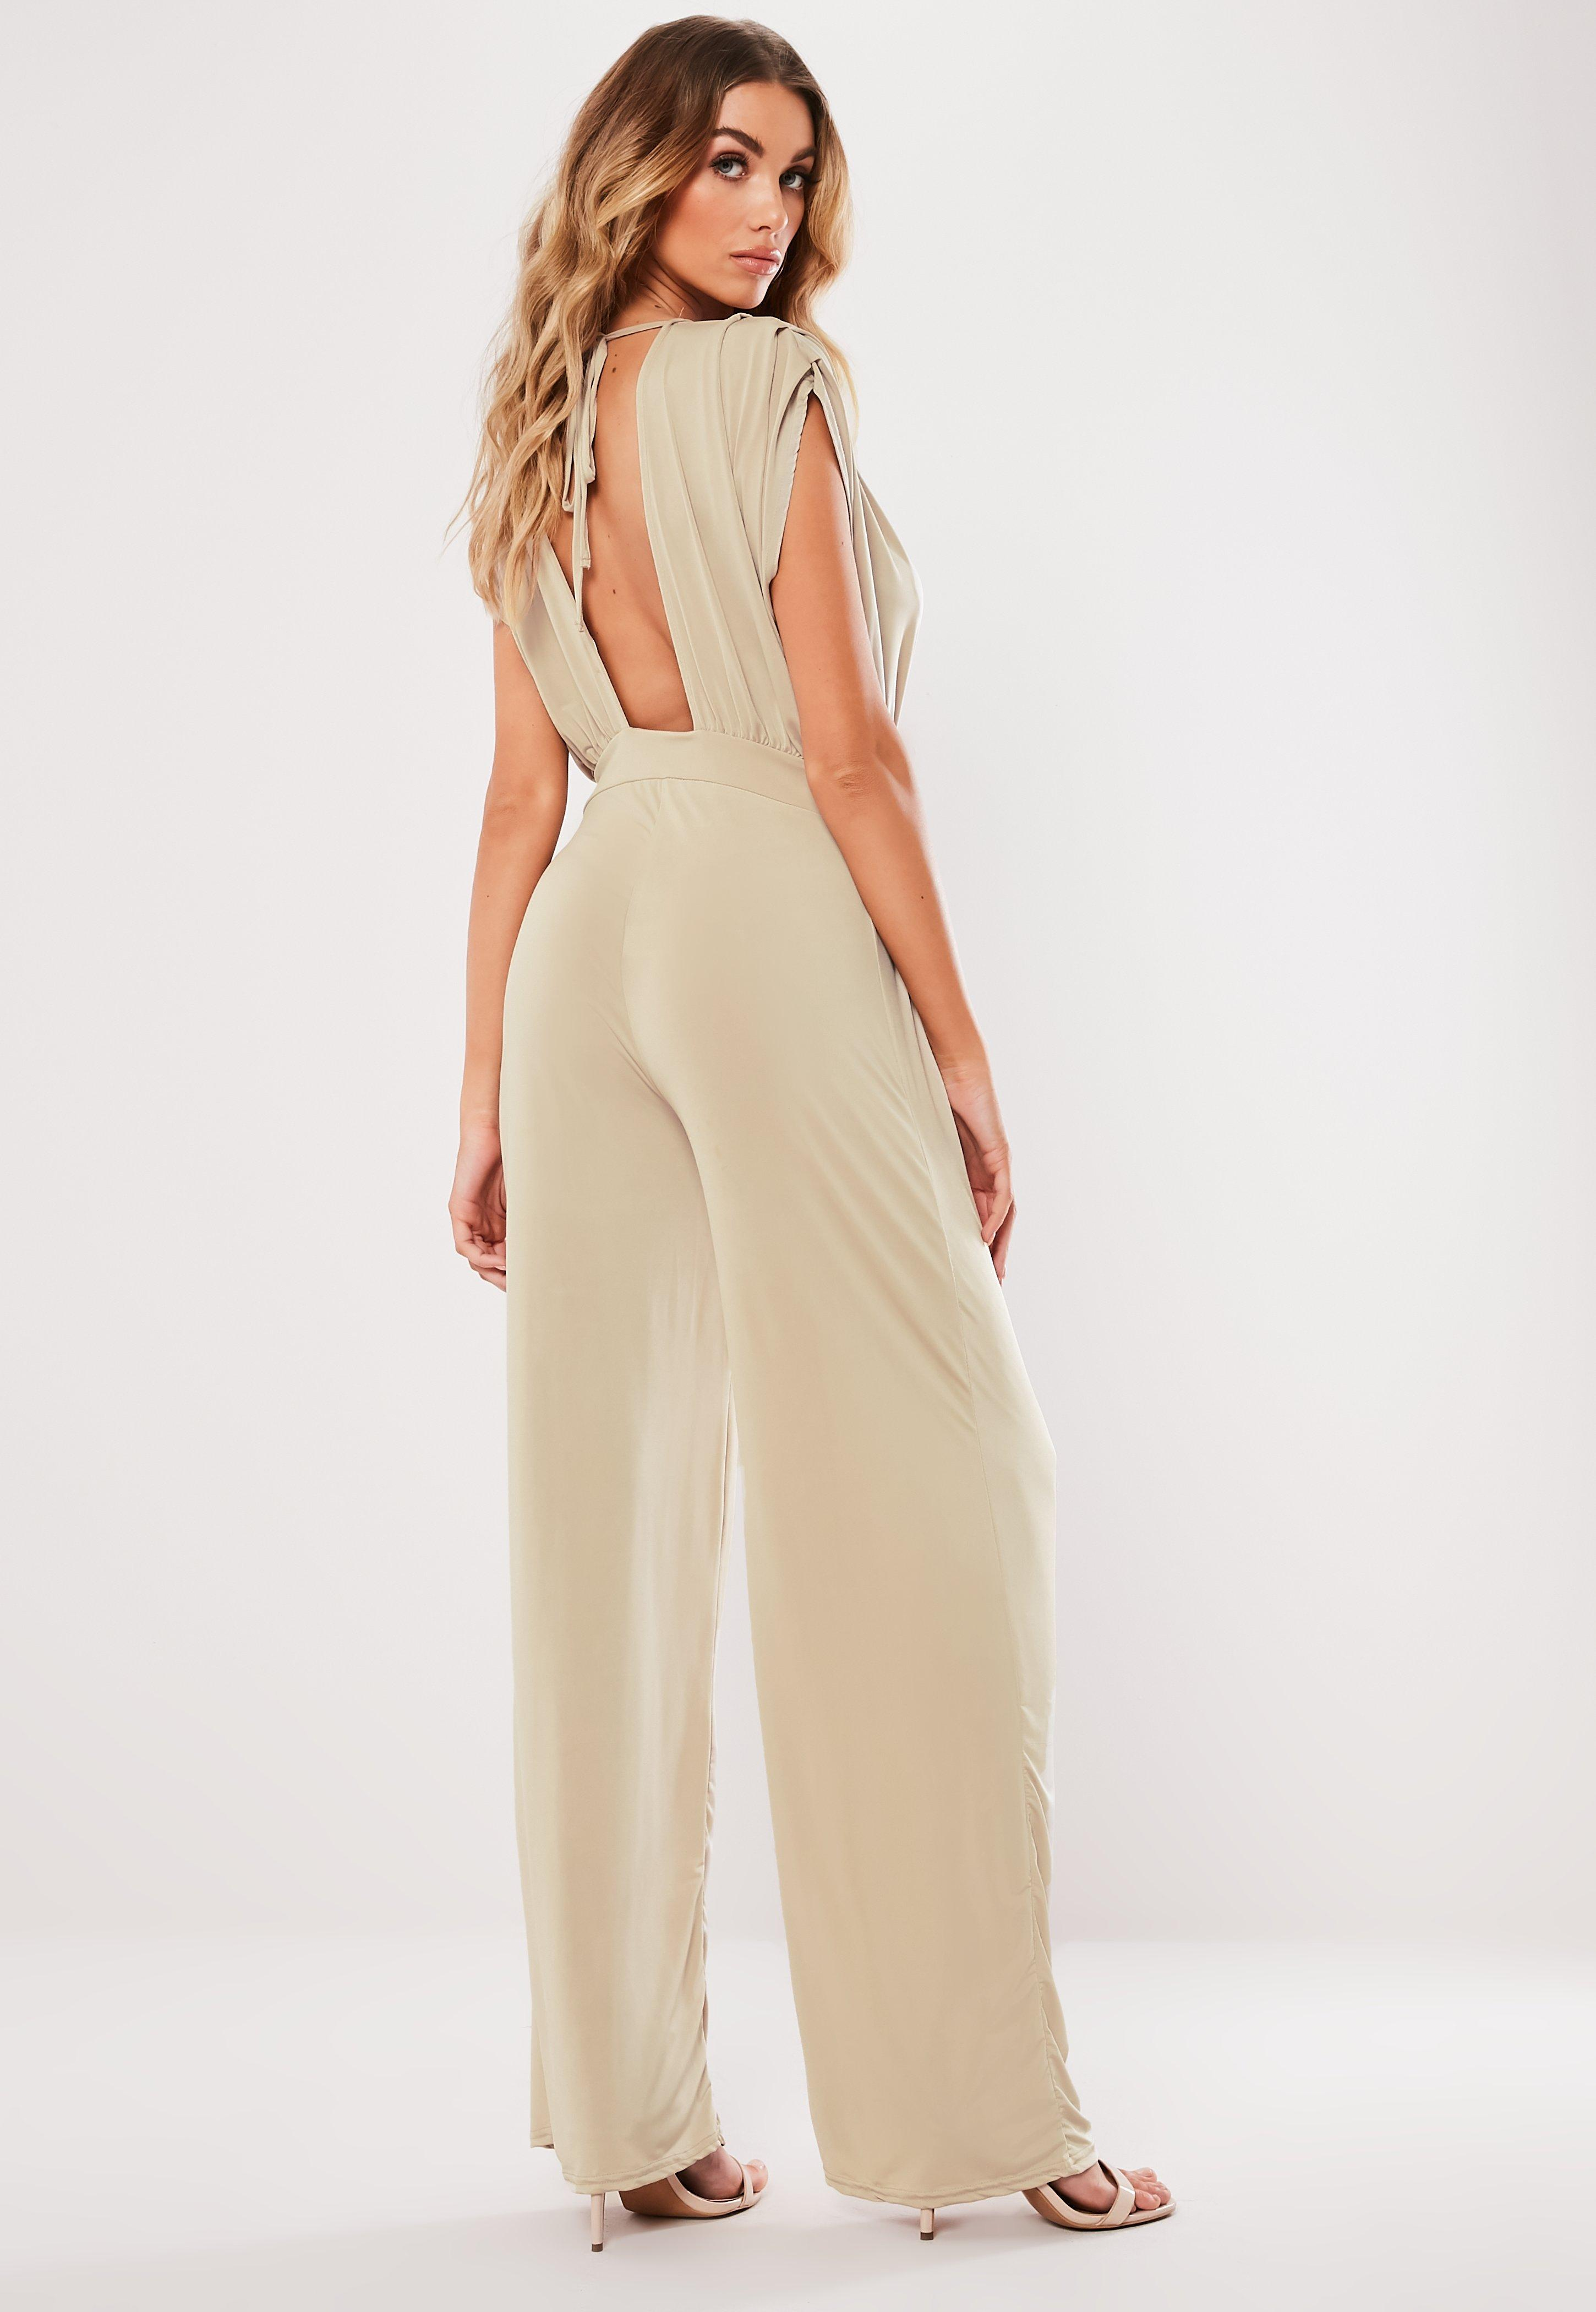 5c77e48847 Missguided - Natural Stone Slinky Plunge Jumpsuit - Lyst. View fullscreen